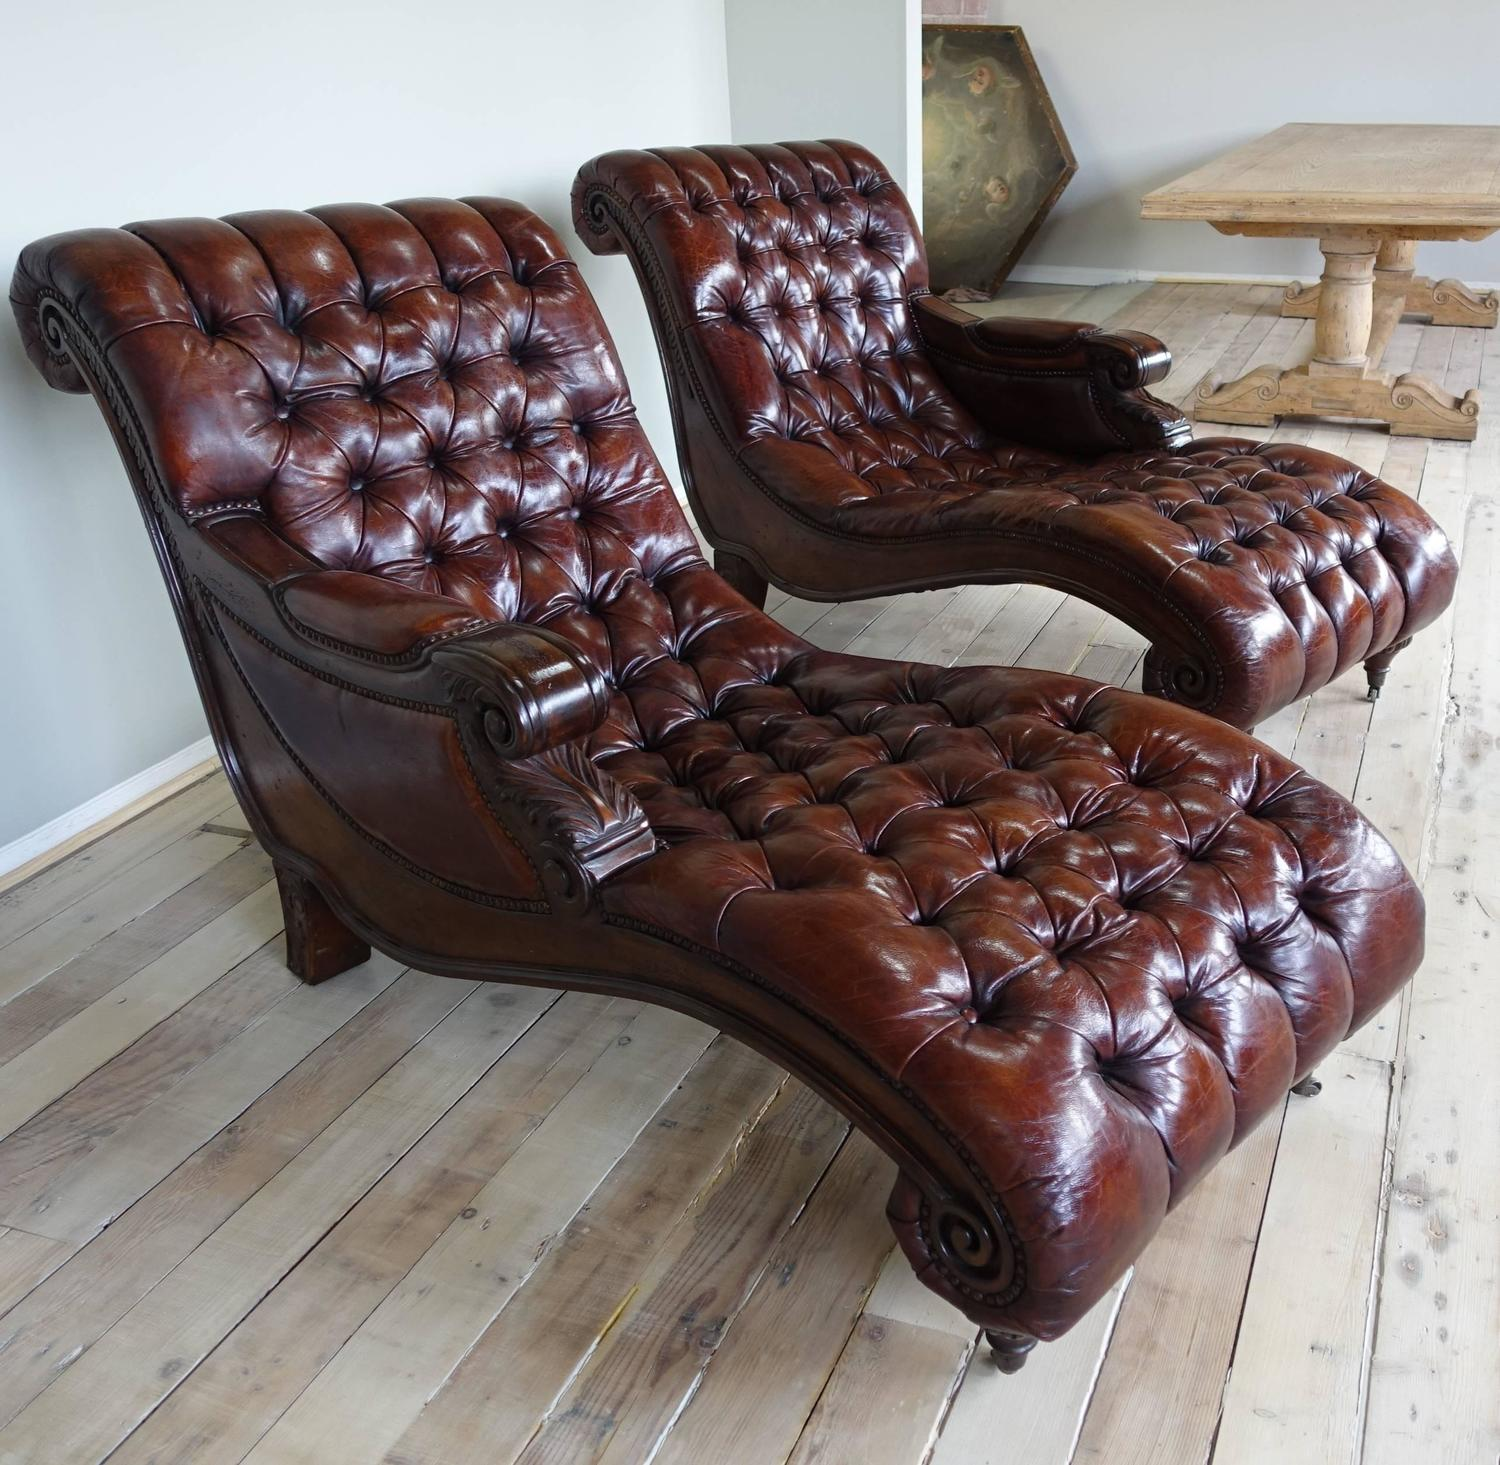 Pair of italian leather tufted chaises circa 1930s at 1stdibs for 1930s chaise lounge